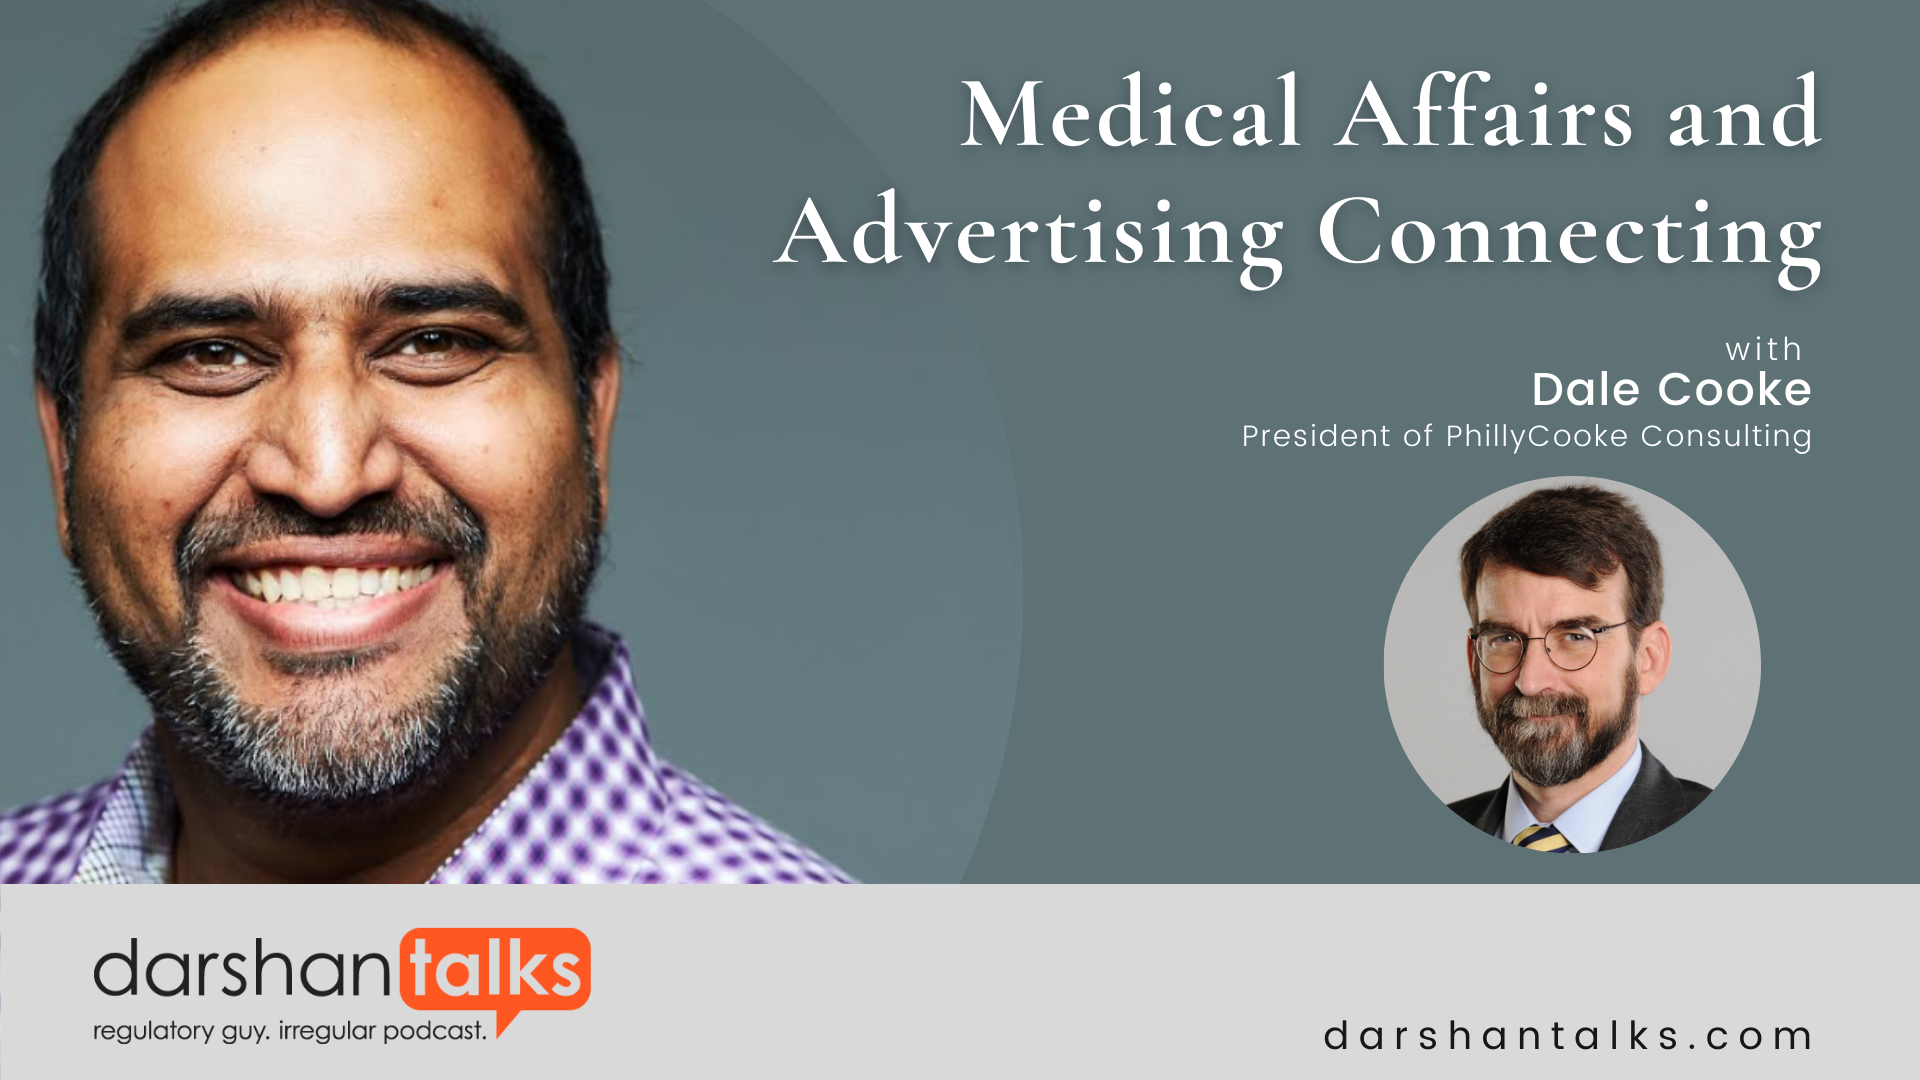 Medical Affairs and Advertising Connecting